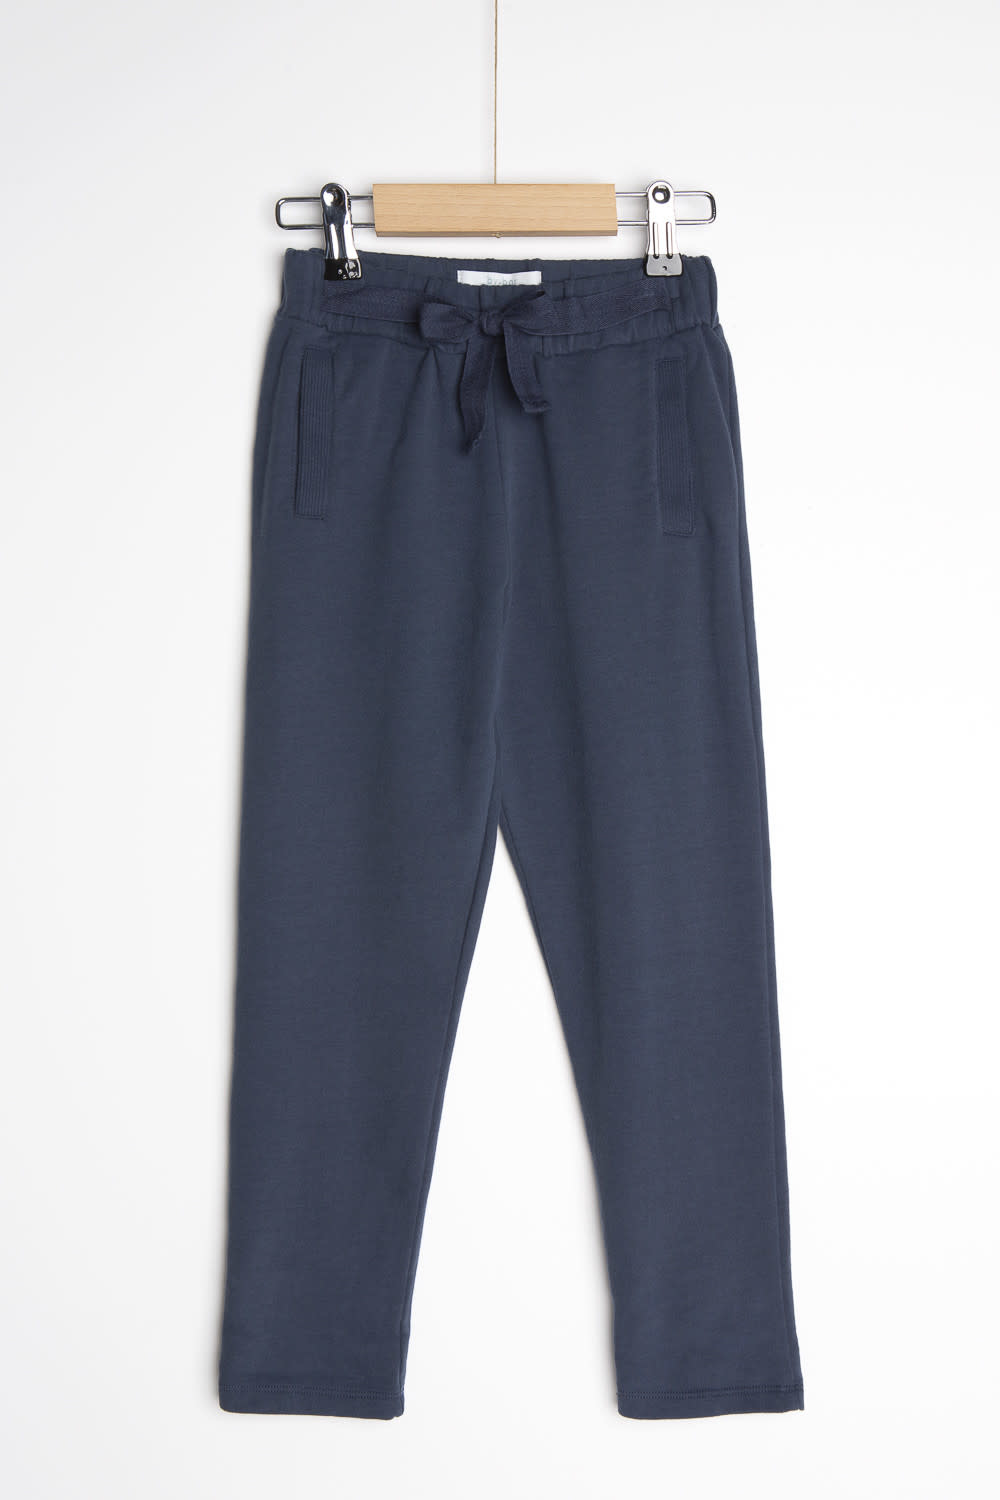 By-Bar By-bar - Jette pant indigo blue